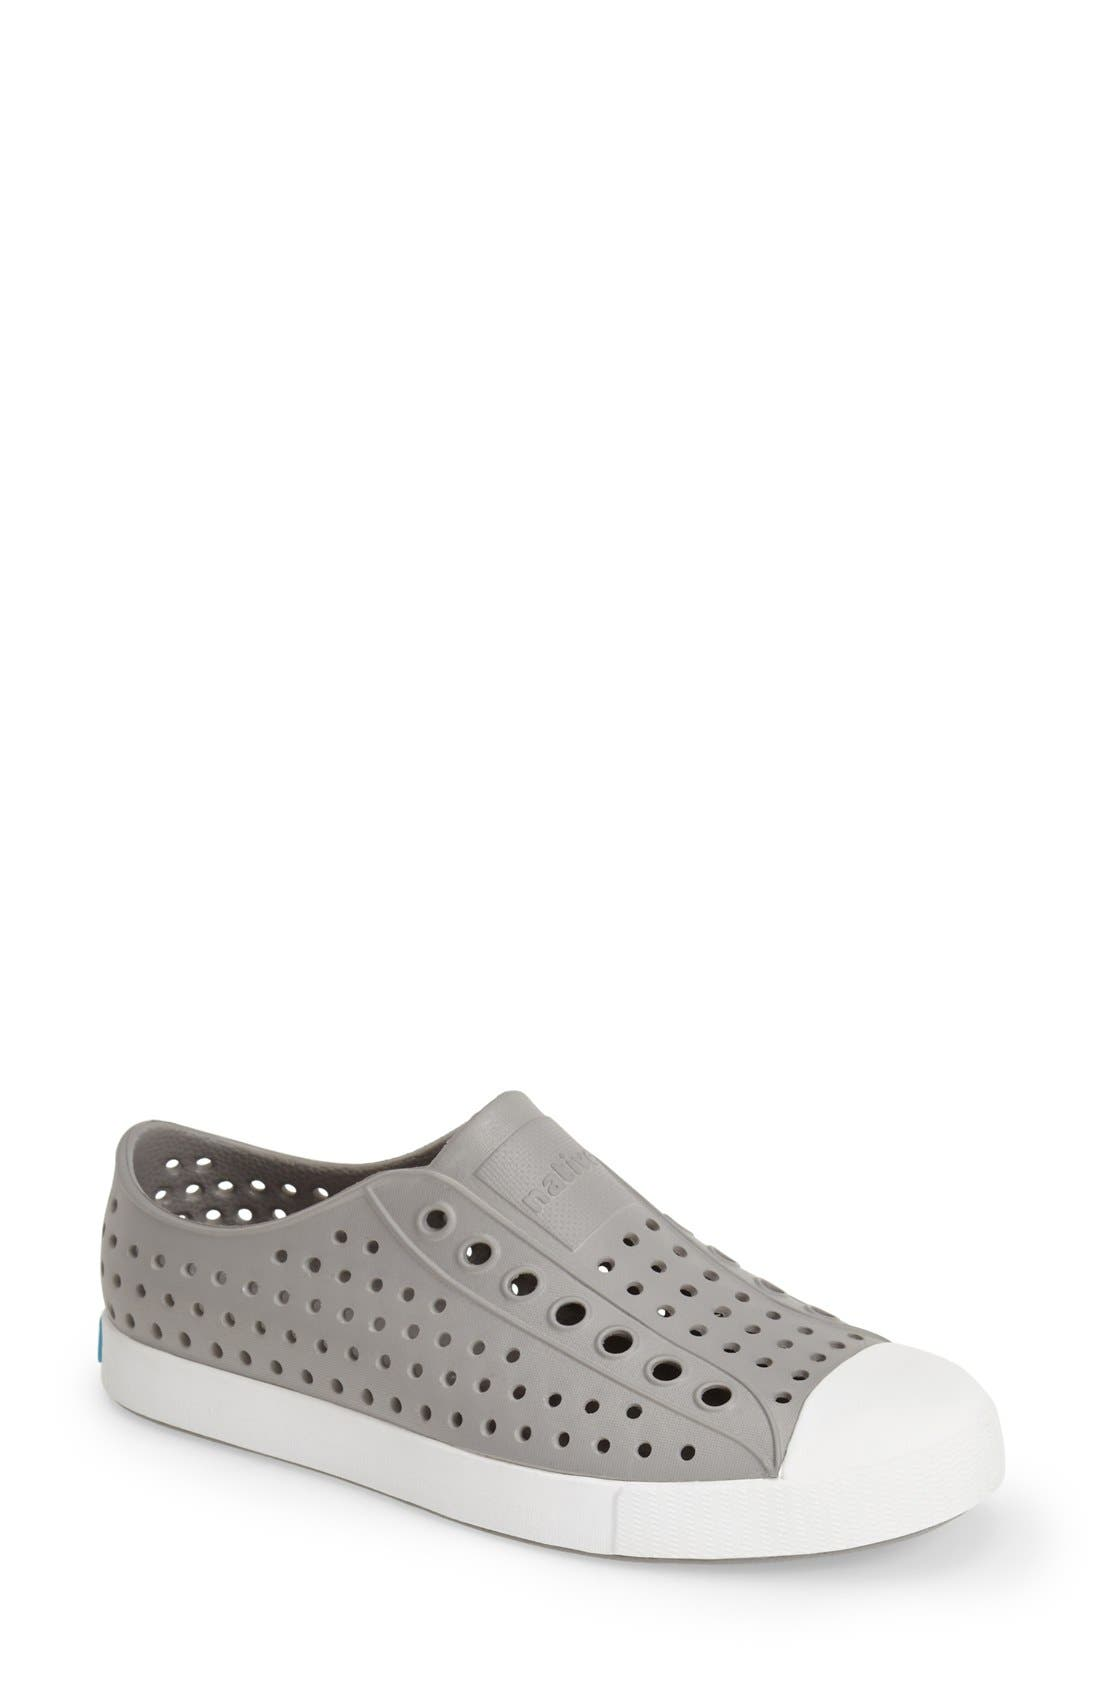 Native Shoes Jefferson Vegan Perforated Sneaker